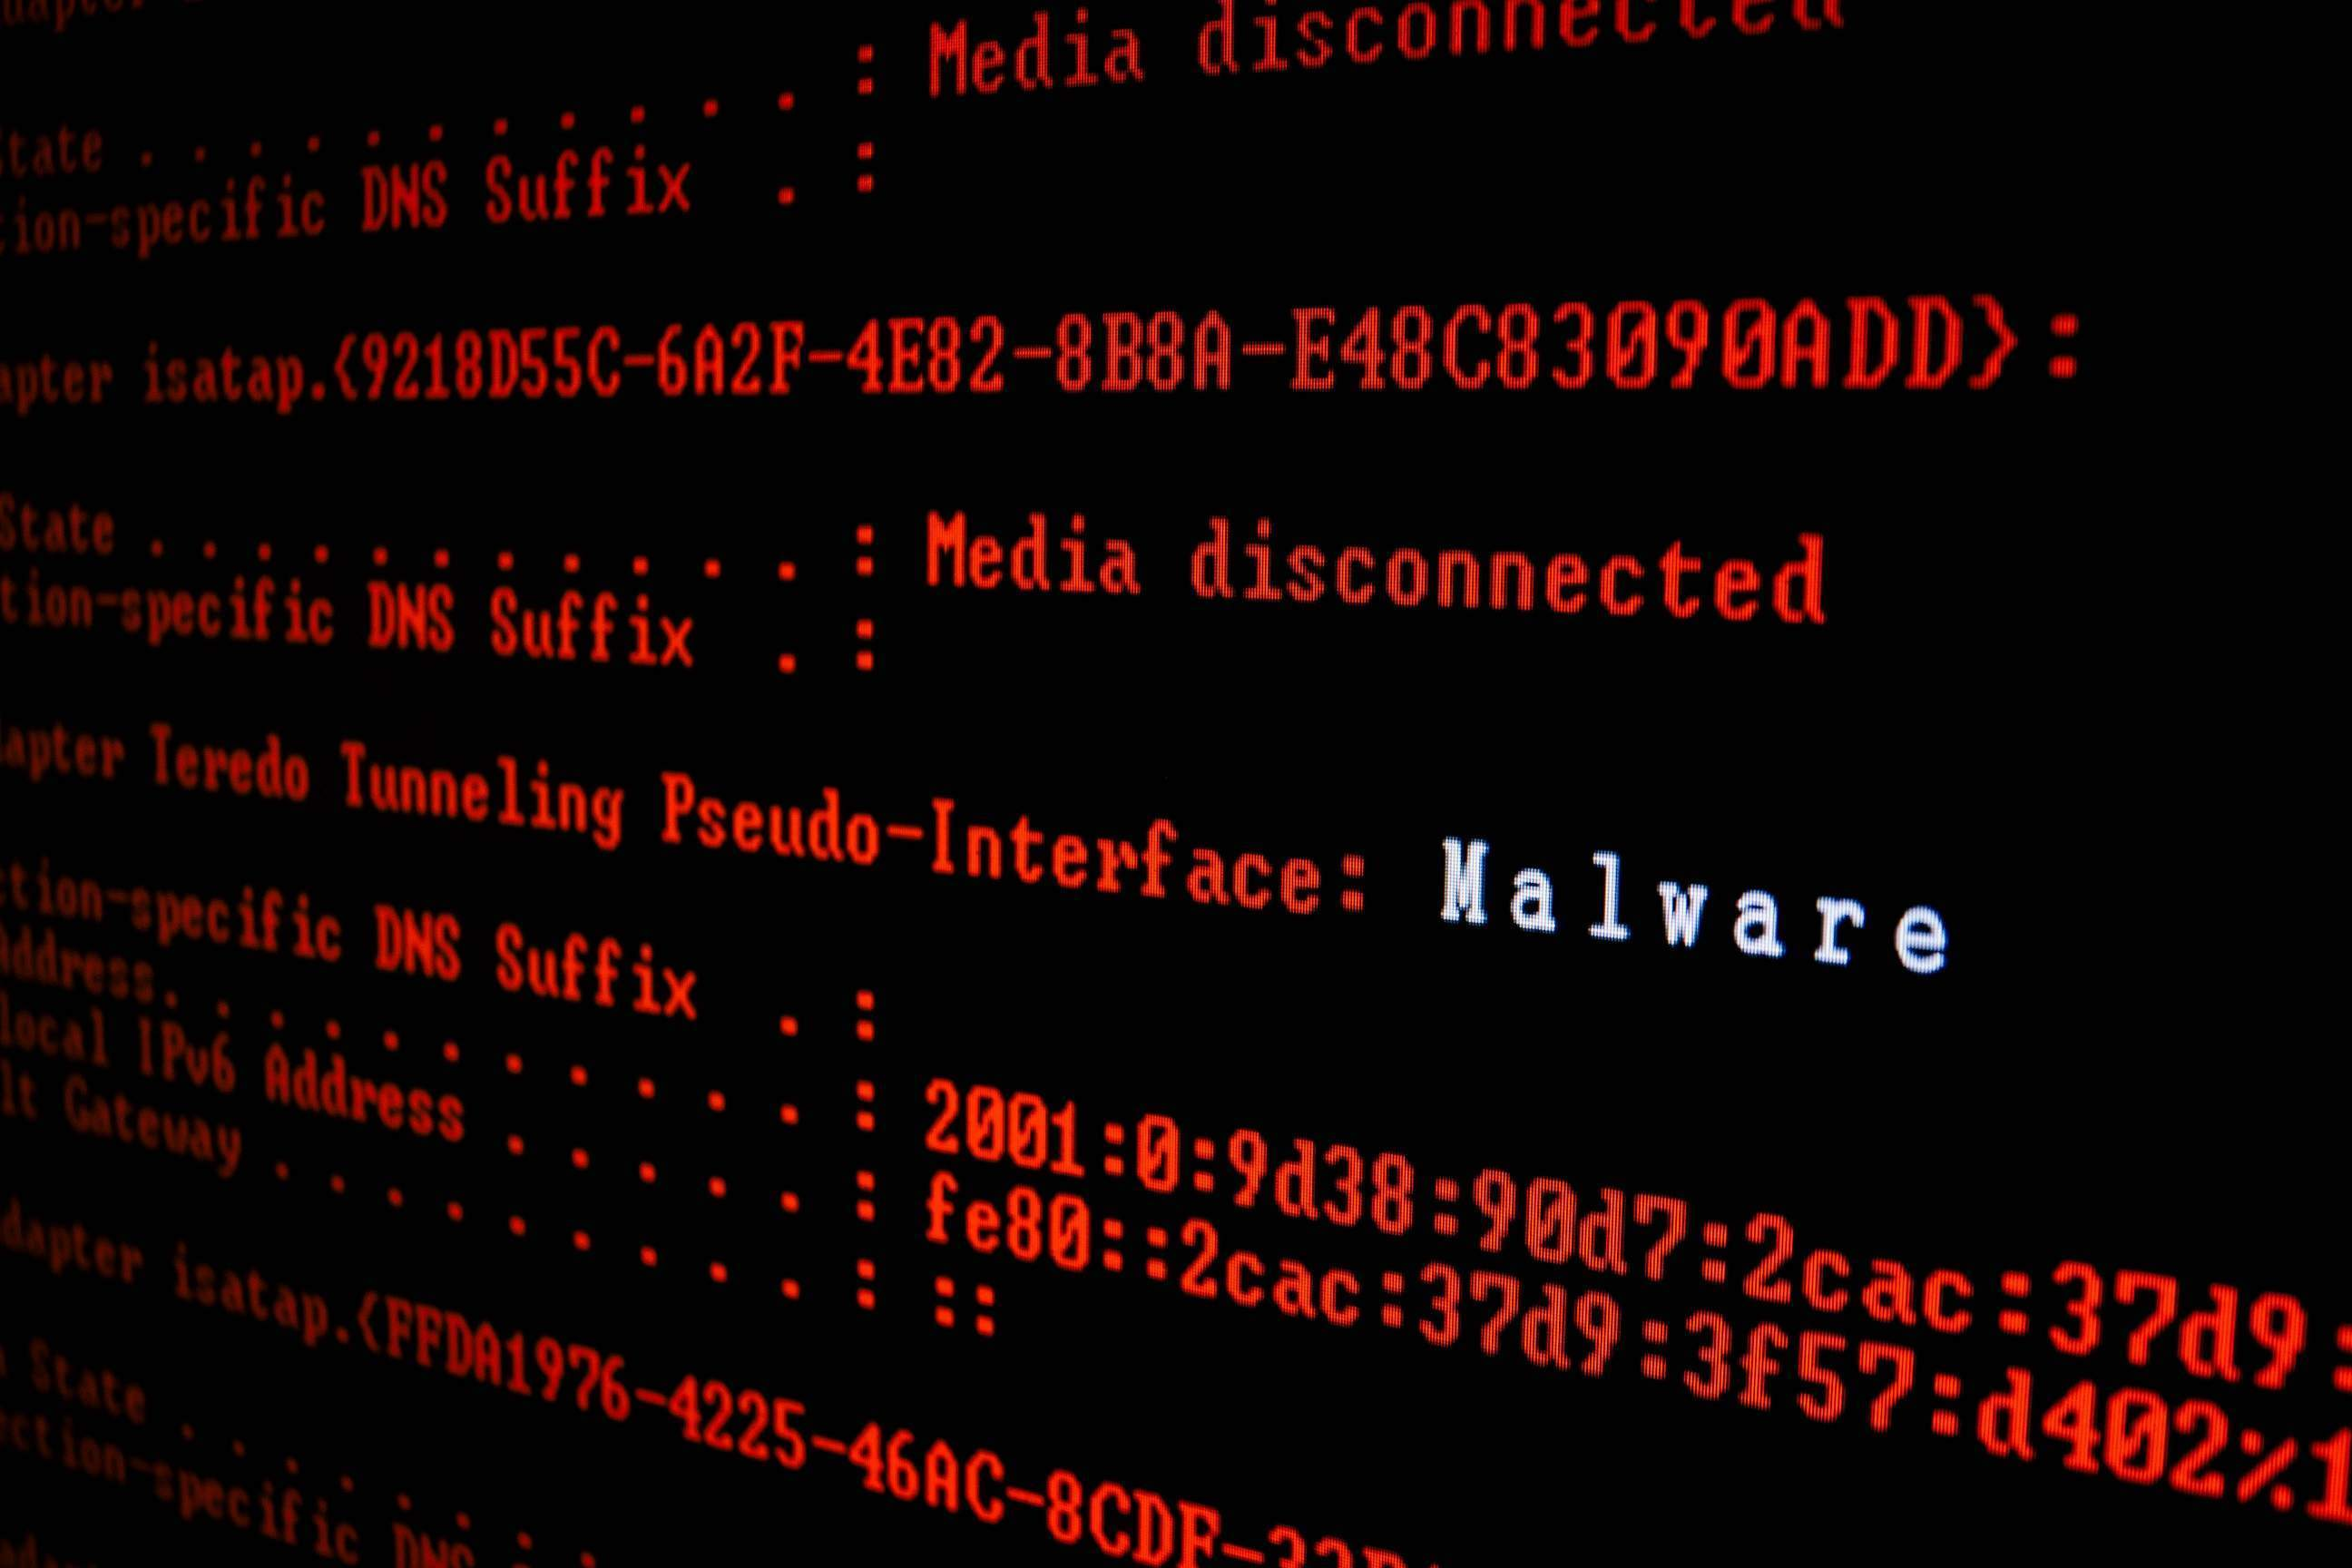 Piriform's CCleaner anti-malware software found to contain malware